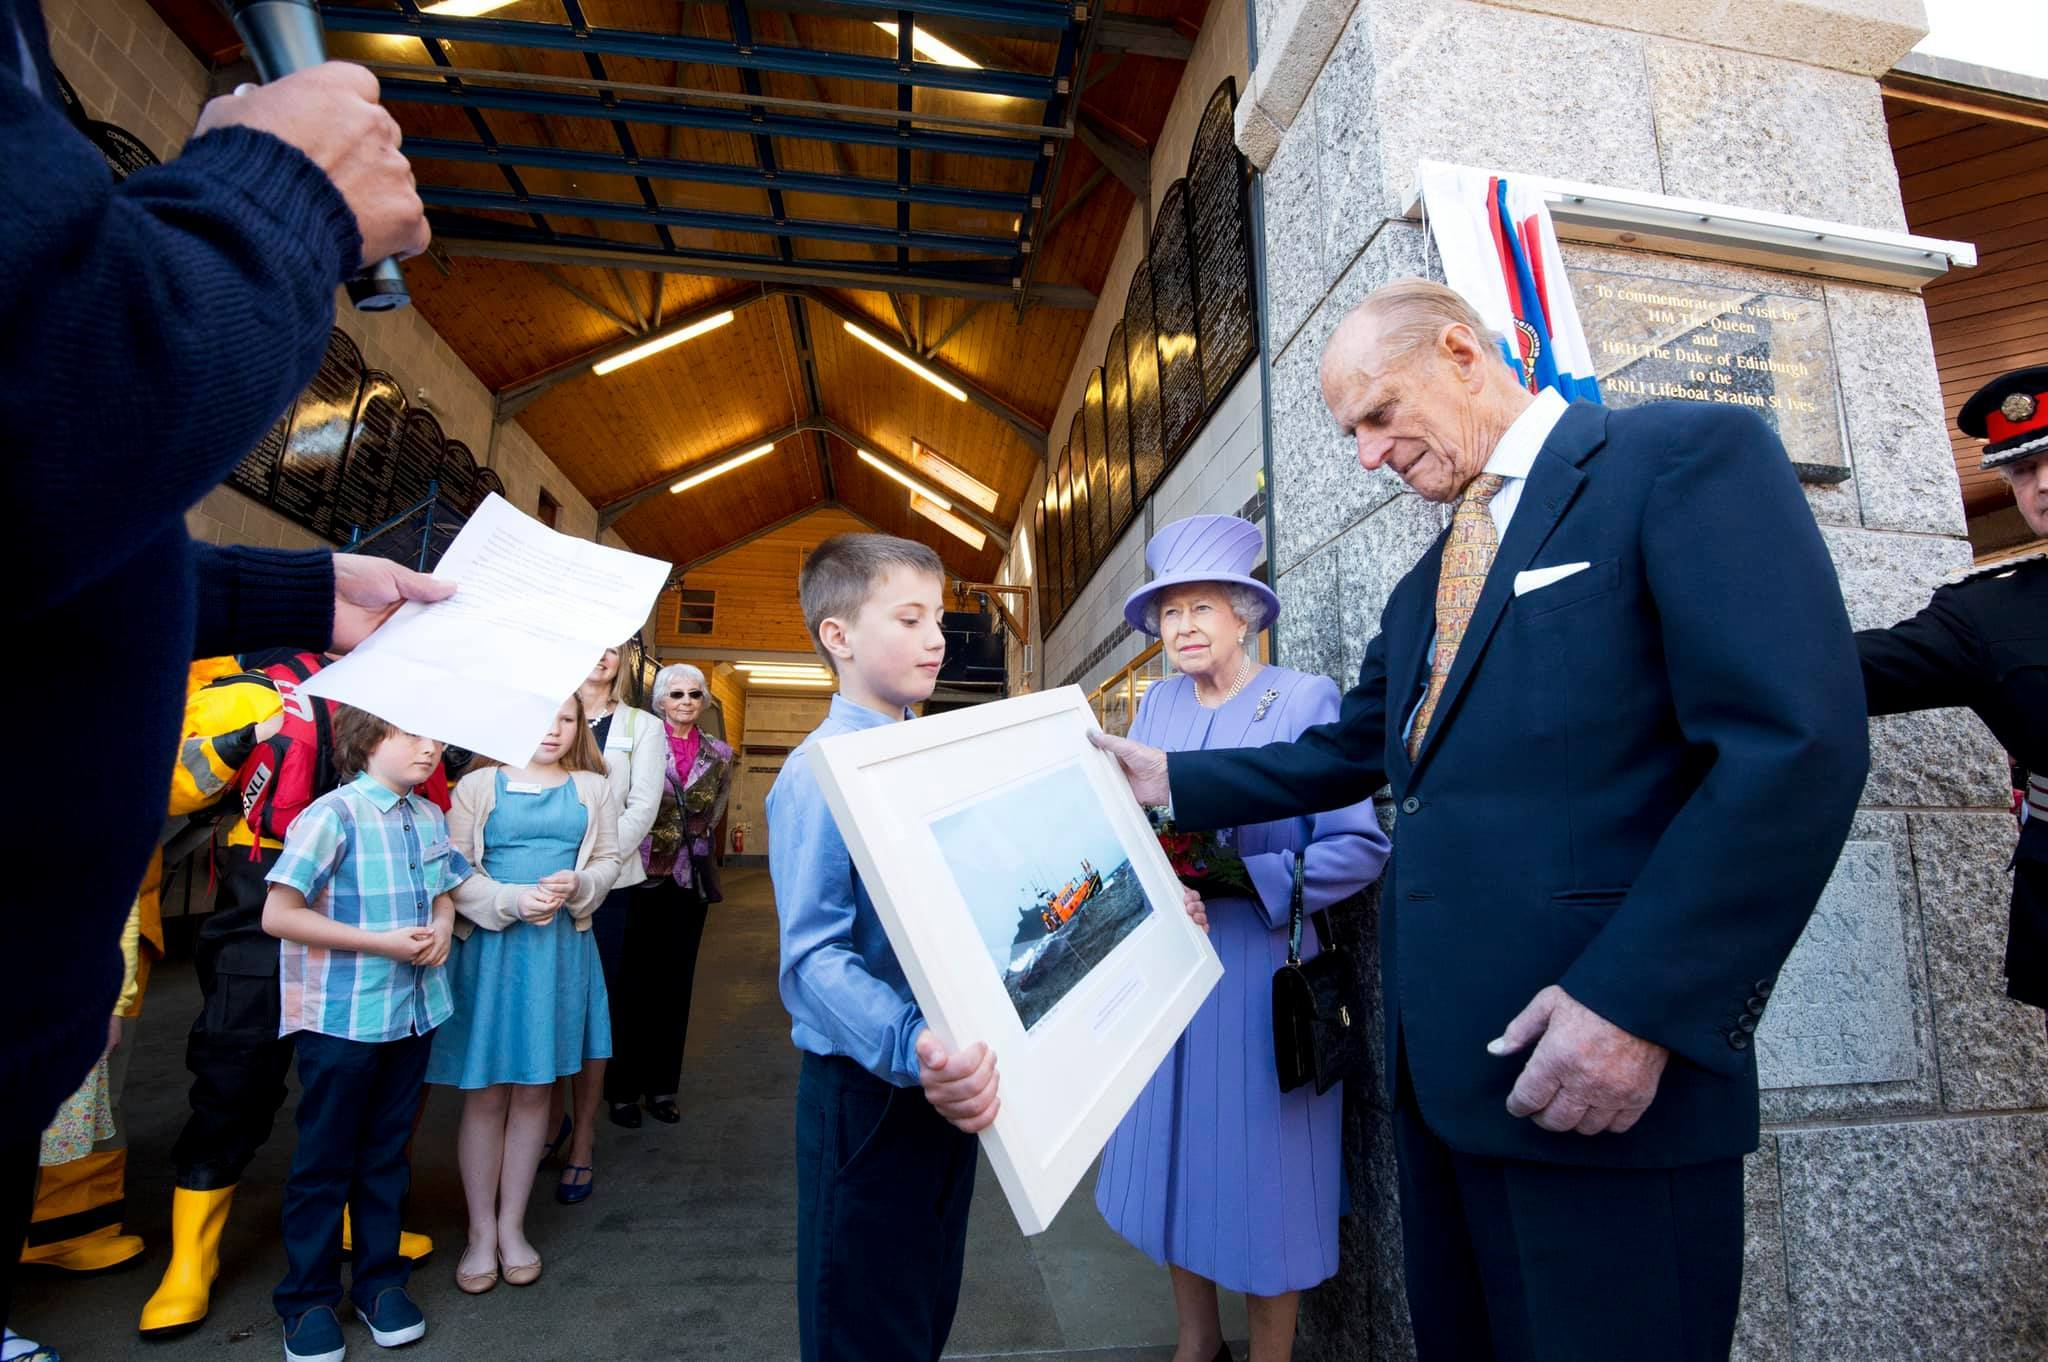 The Queen and Prince Philip are presented with a print on a visit to St Ives Lifeboat Station. Picture: St Ives RNLI